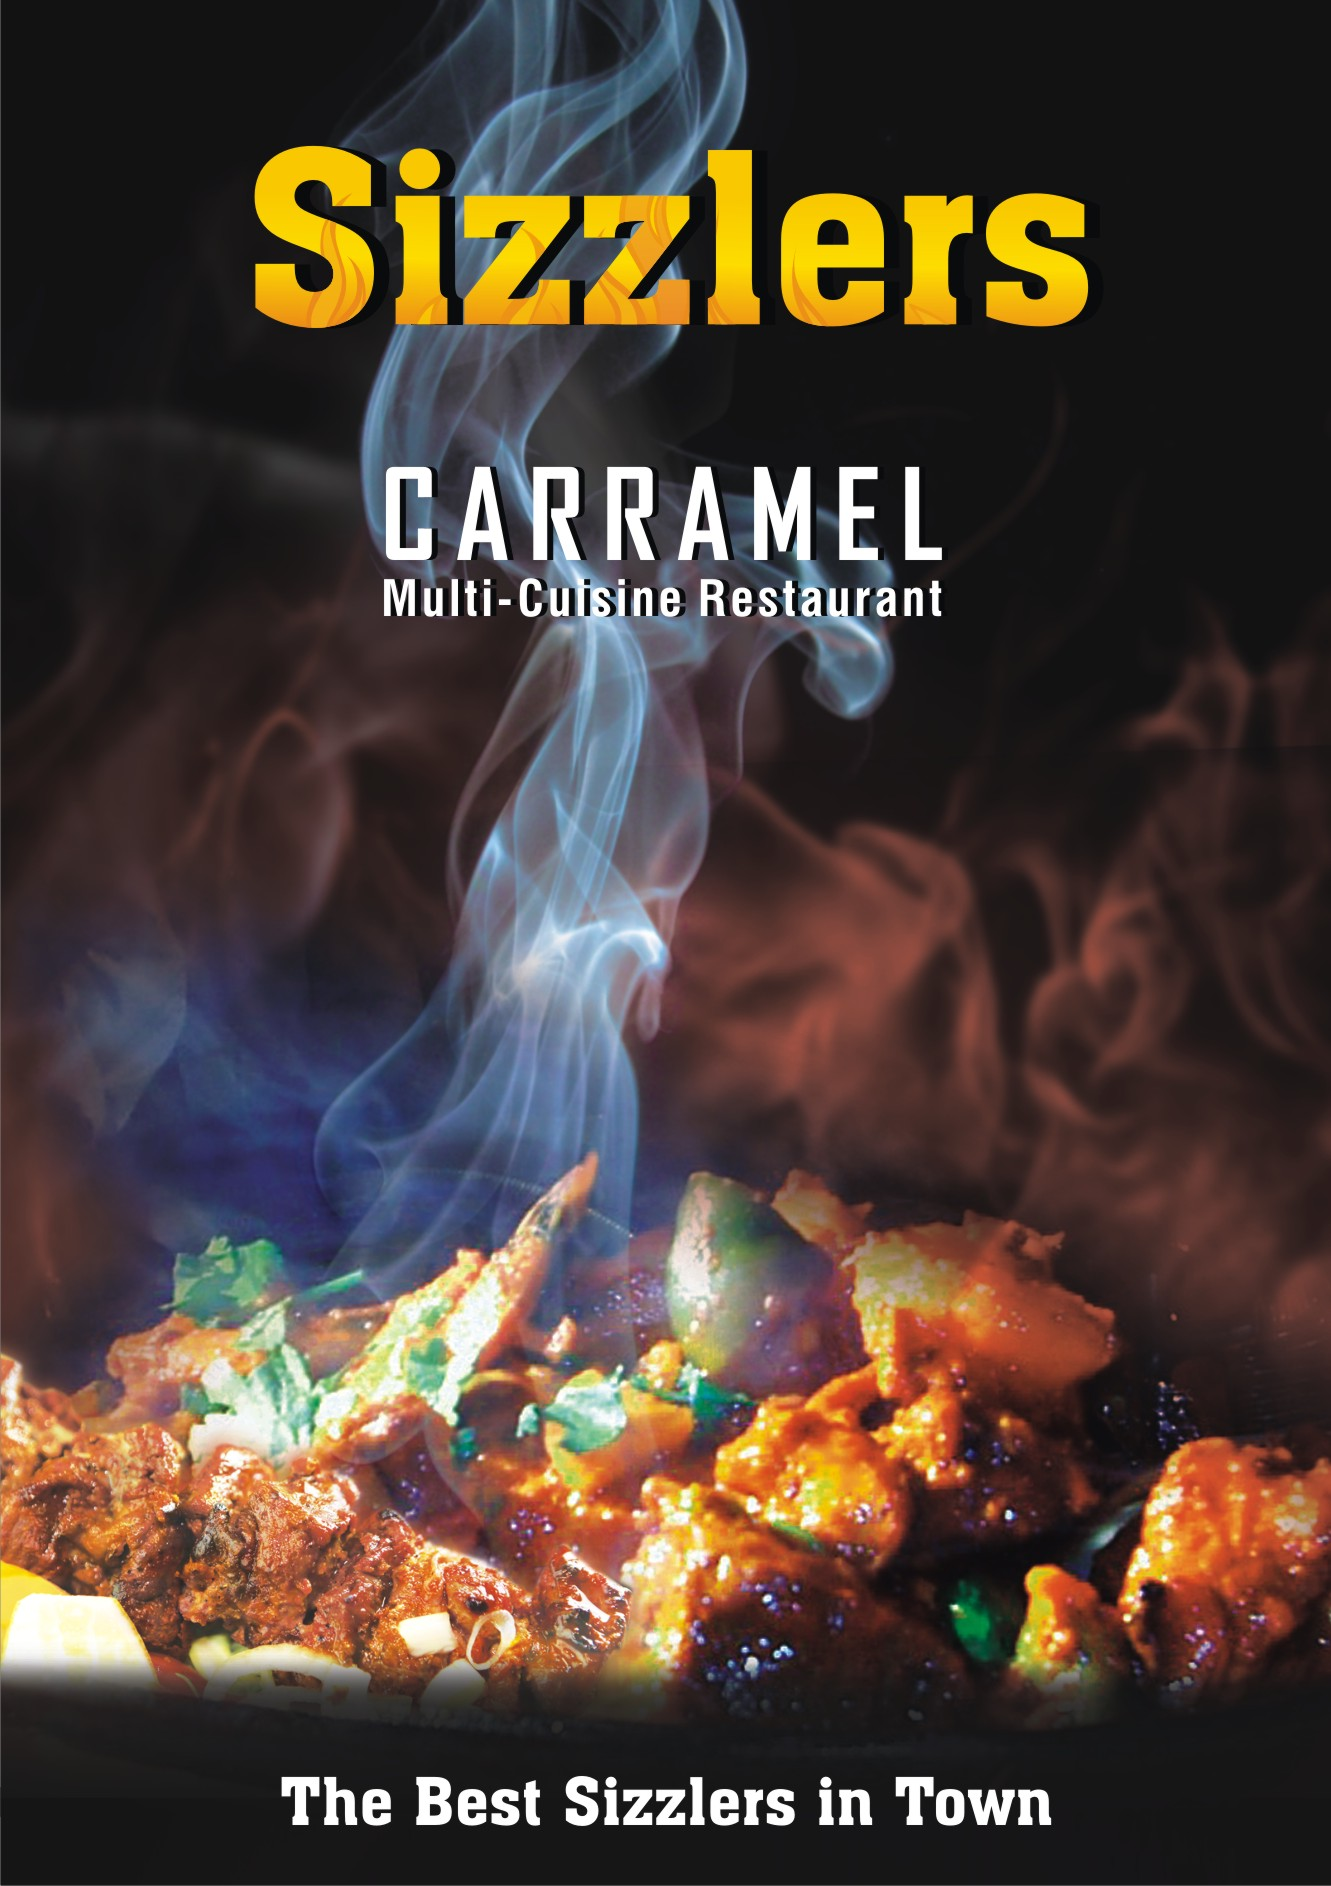 Introducing Sizzlers at Carramel, Hotel Cocoon.